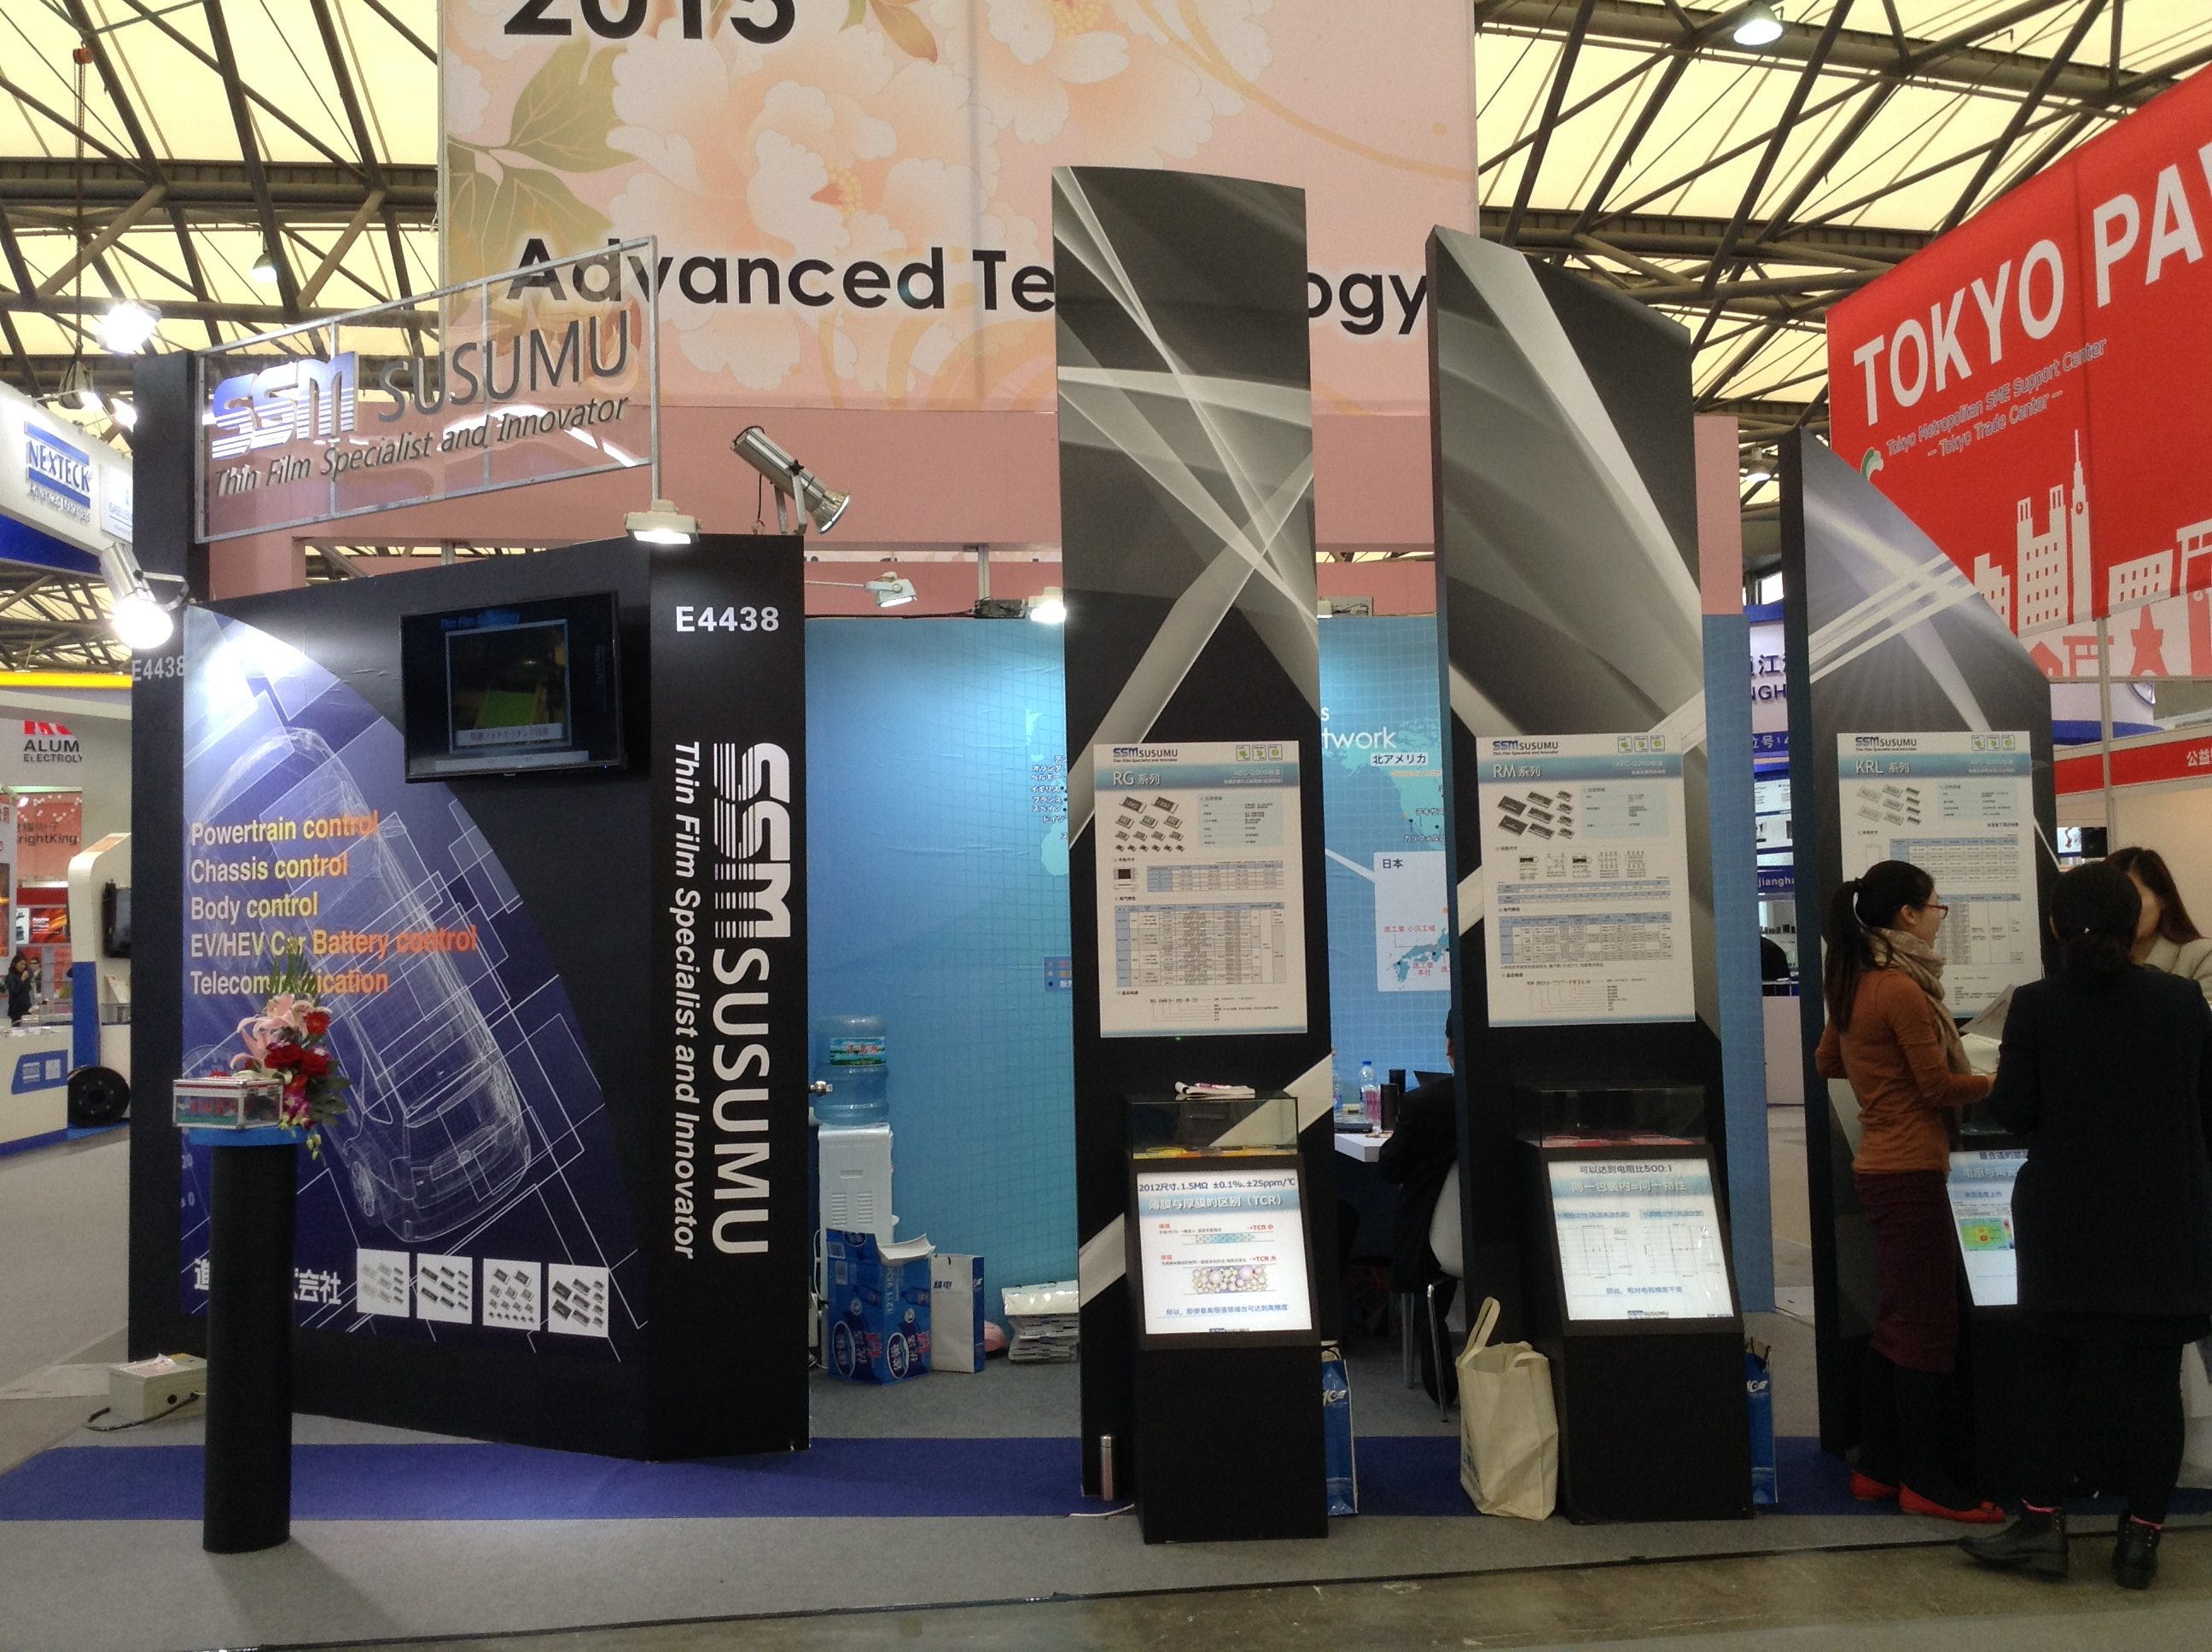 The 14th electronica China 2015 International trade fair for electronic components, systems and applications